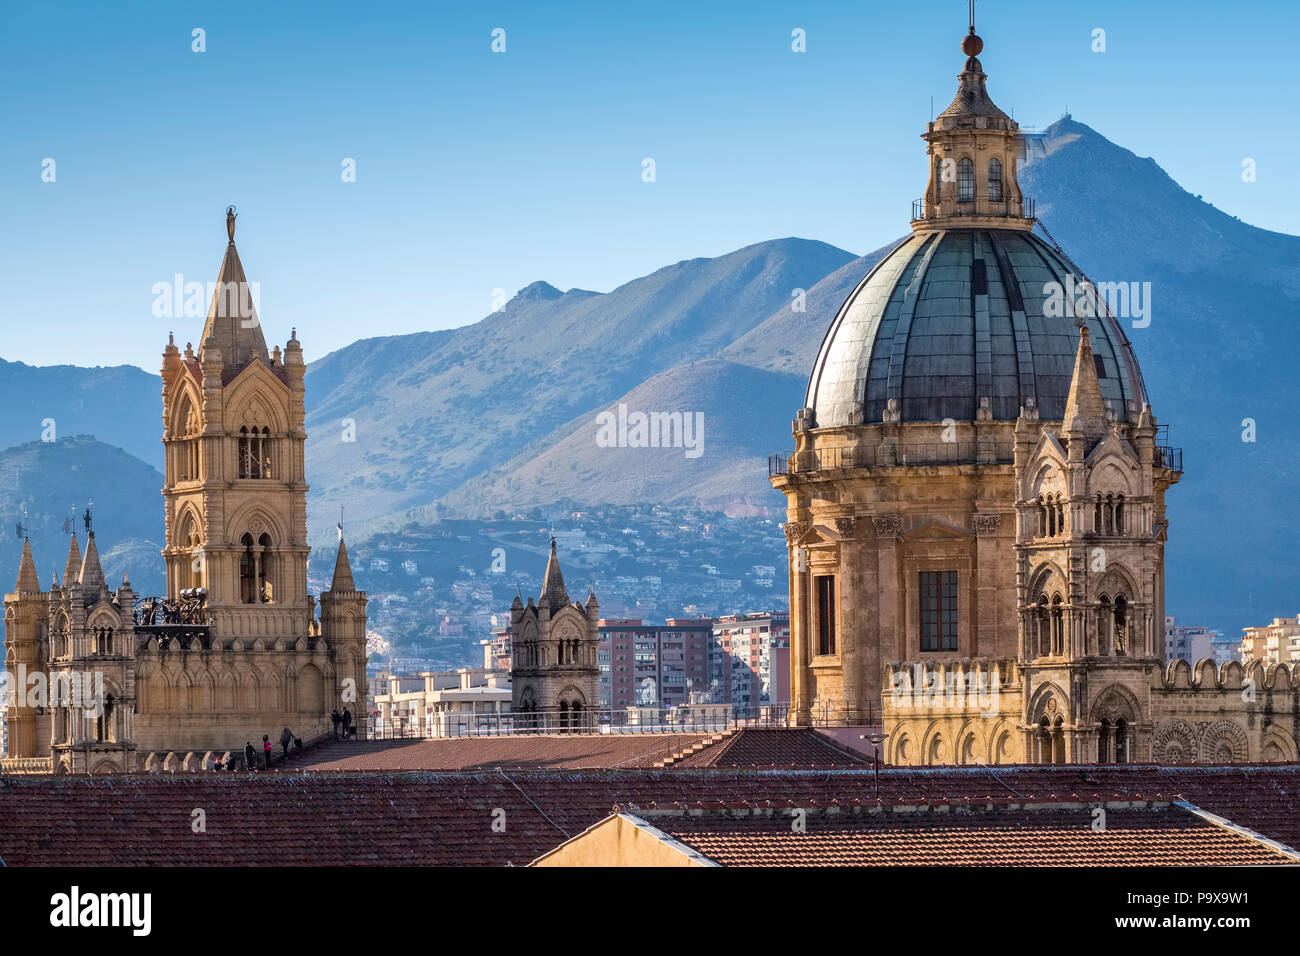 Sicily, Italy - Skyline of Palermo, Sicily, Europe, showing the dome of Palermo cathedral and architecture - Stock Image